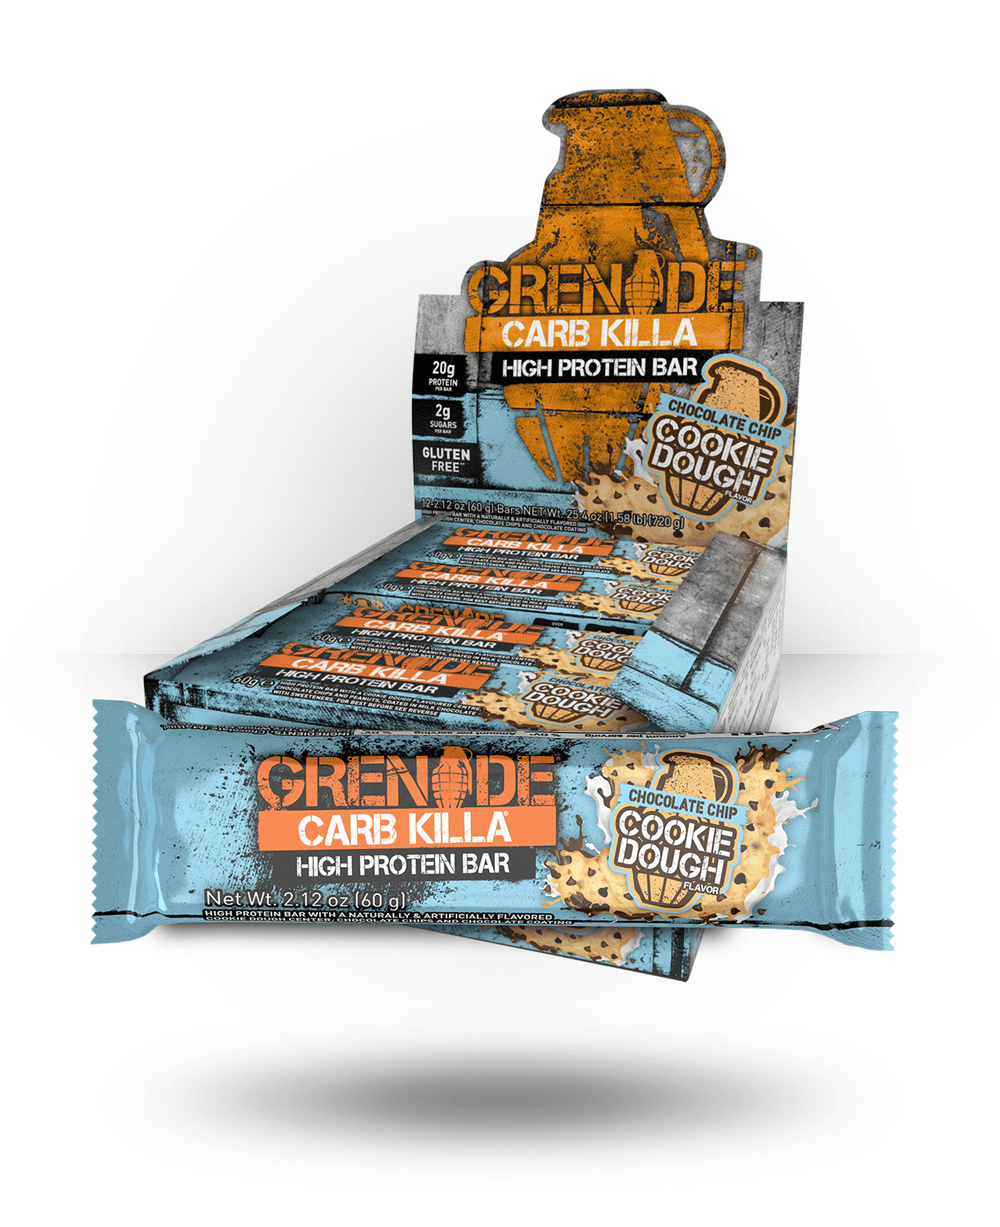 Grenade Carb Killa Bar Chocolate Chip Cookie Dough, 12 Bars